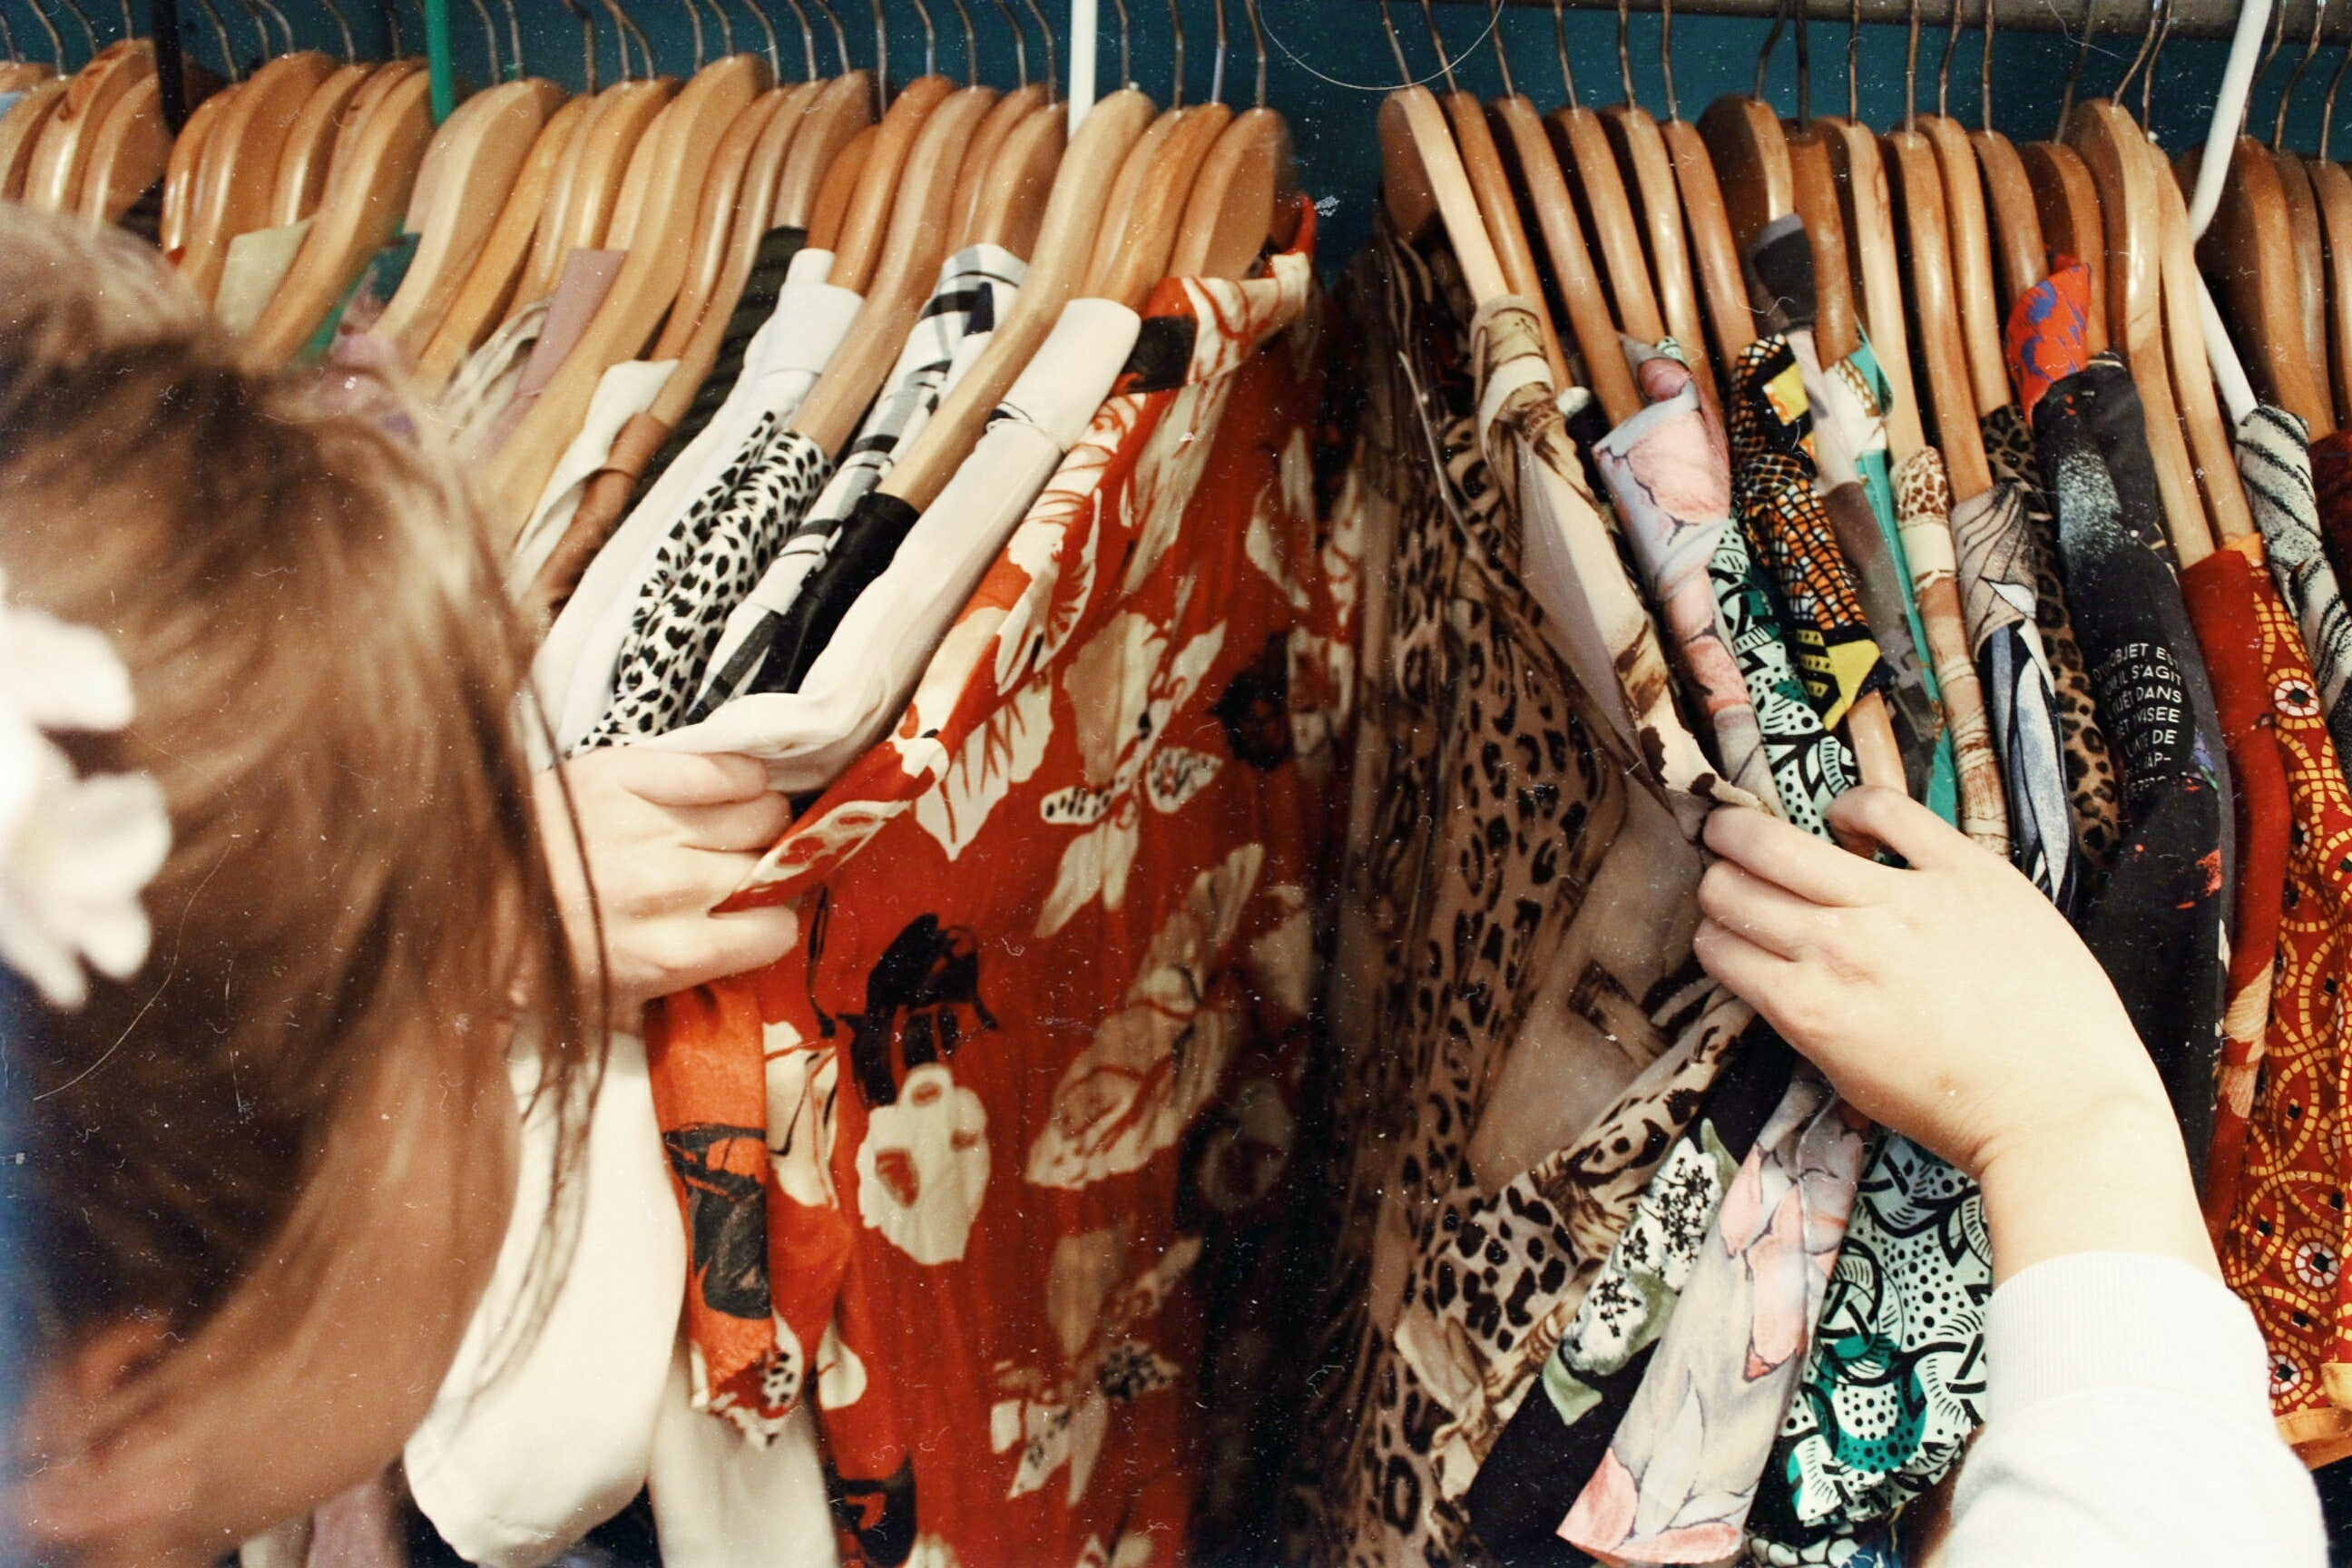 Looking through a clothing rack. Photo courtesy of Becca McHaffie on Unsplash.